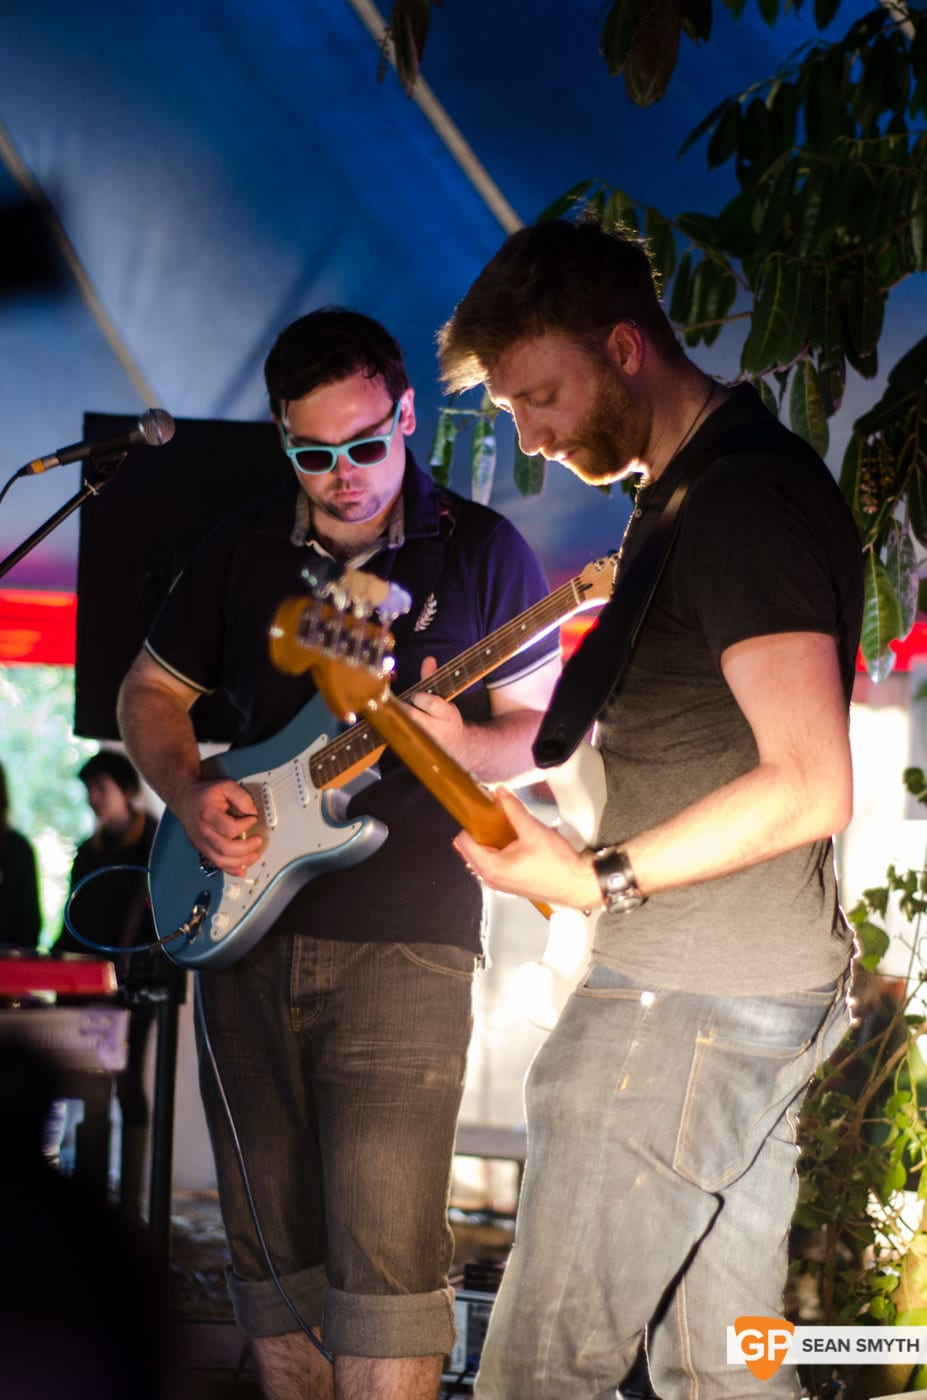 almost-ghosts-sunday-at-vantastival-by-sean-smyth-1-5-14-4-of-49